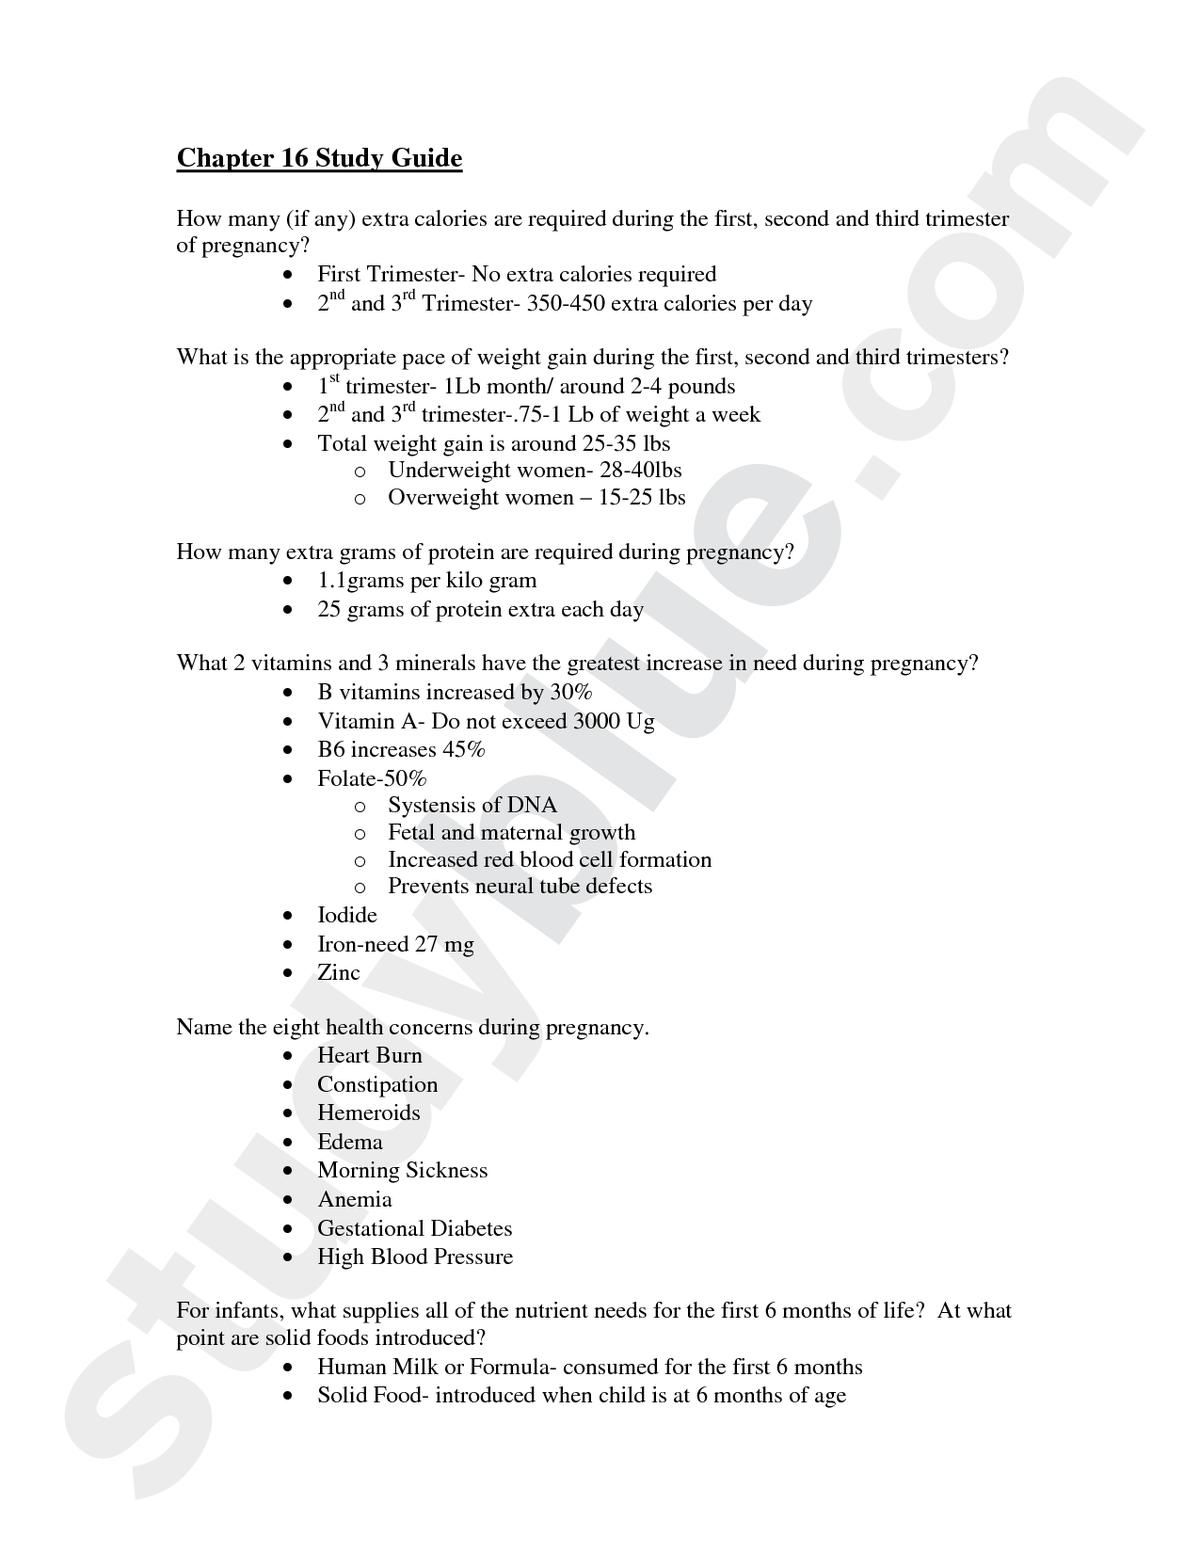 nutrition through life cycle study guide pregnancy hnfe 2014 rh pinterest com Anatomy and Physiology Study Guide Anatomy and Physiology Study Guide